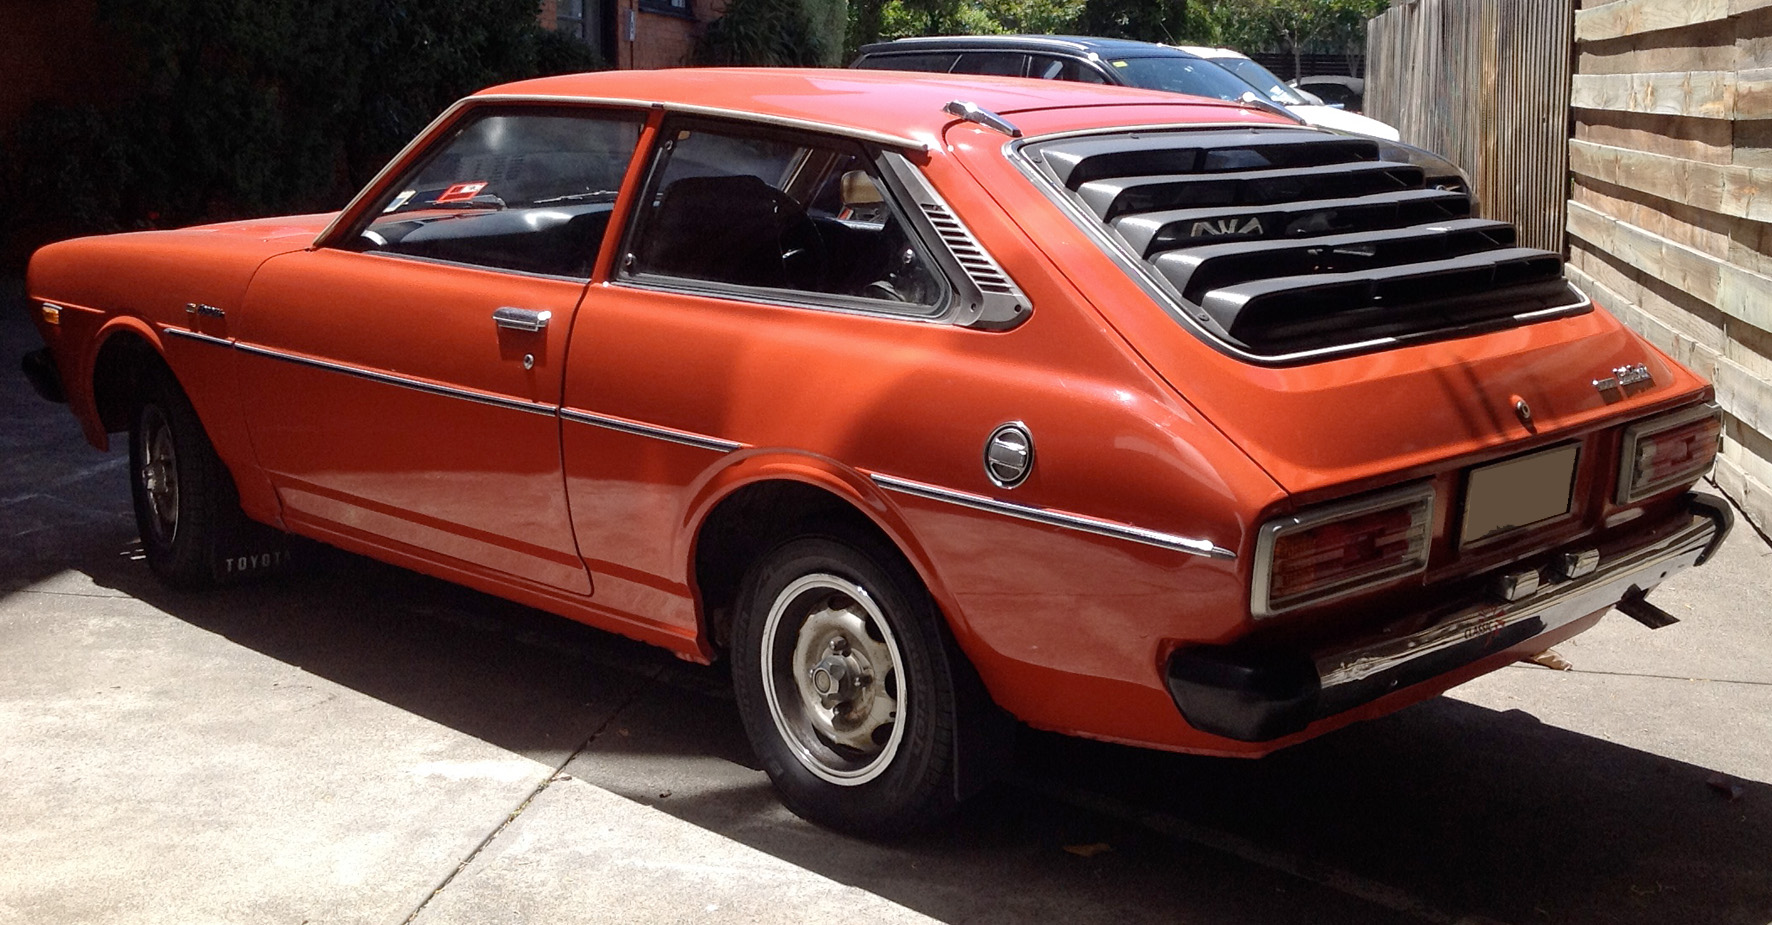 1977 toyota corolla liftback 3 dr star cars agency. Black Bedroom Furniture Sets. Home Design Ideas